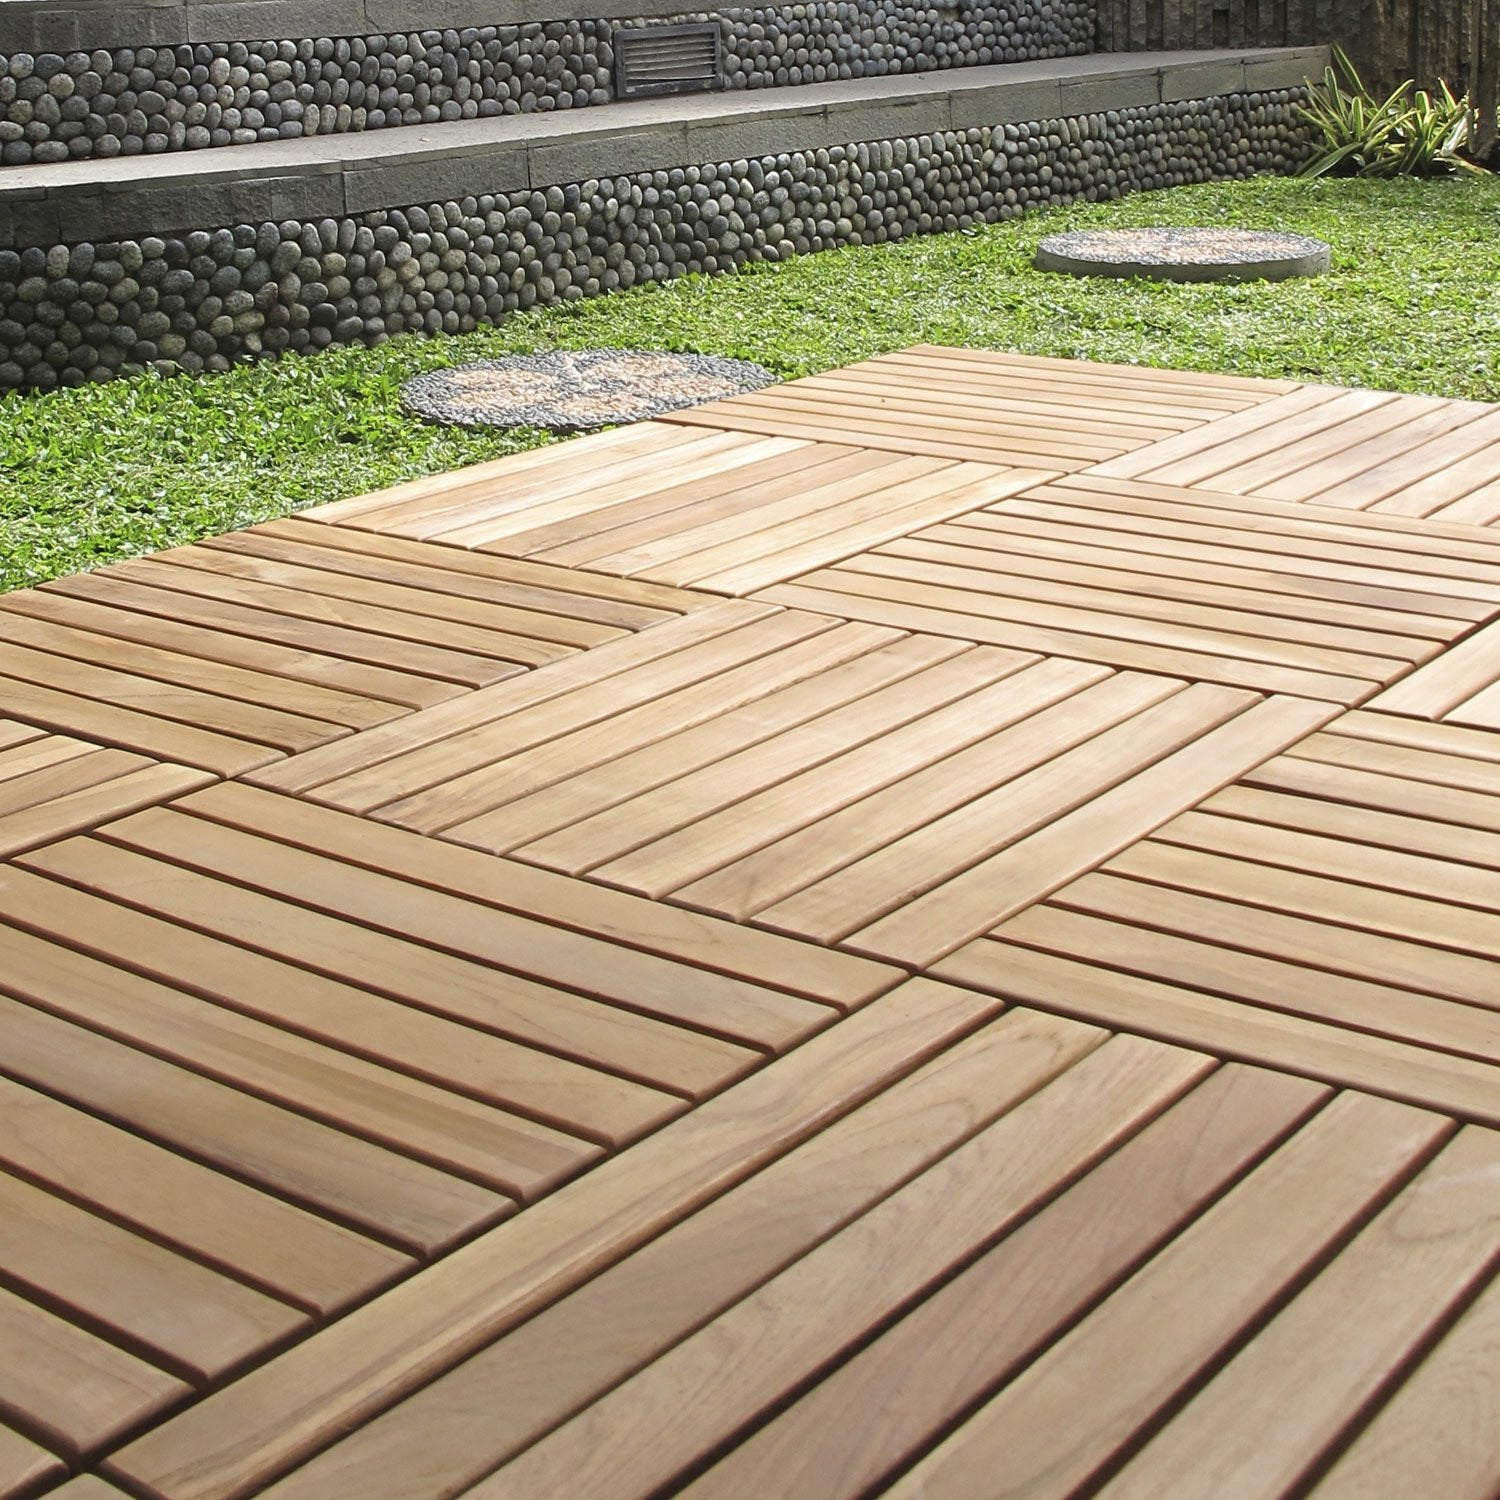 Dalle clipsable bois marron naturel miel x cm x mm lero - Dalle terrasse composite leroy merlin ...